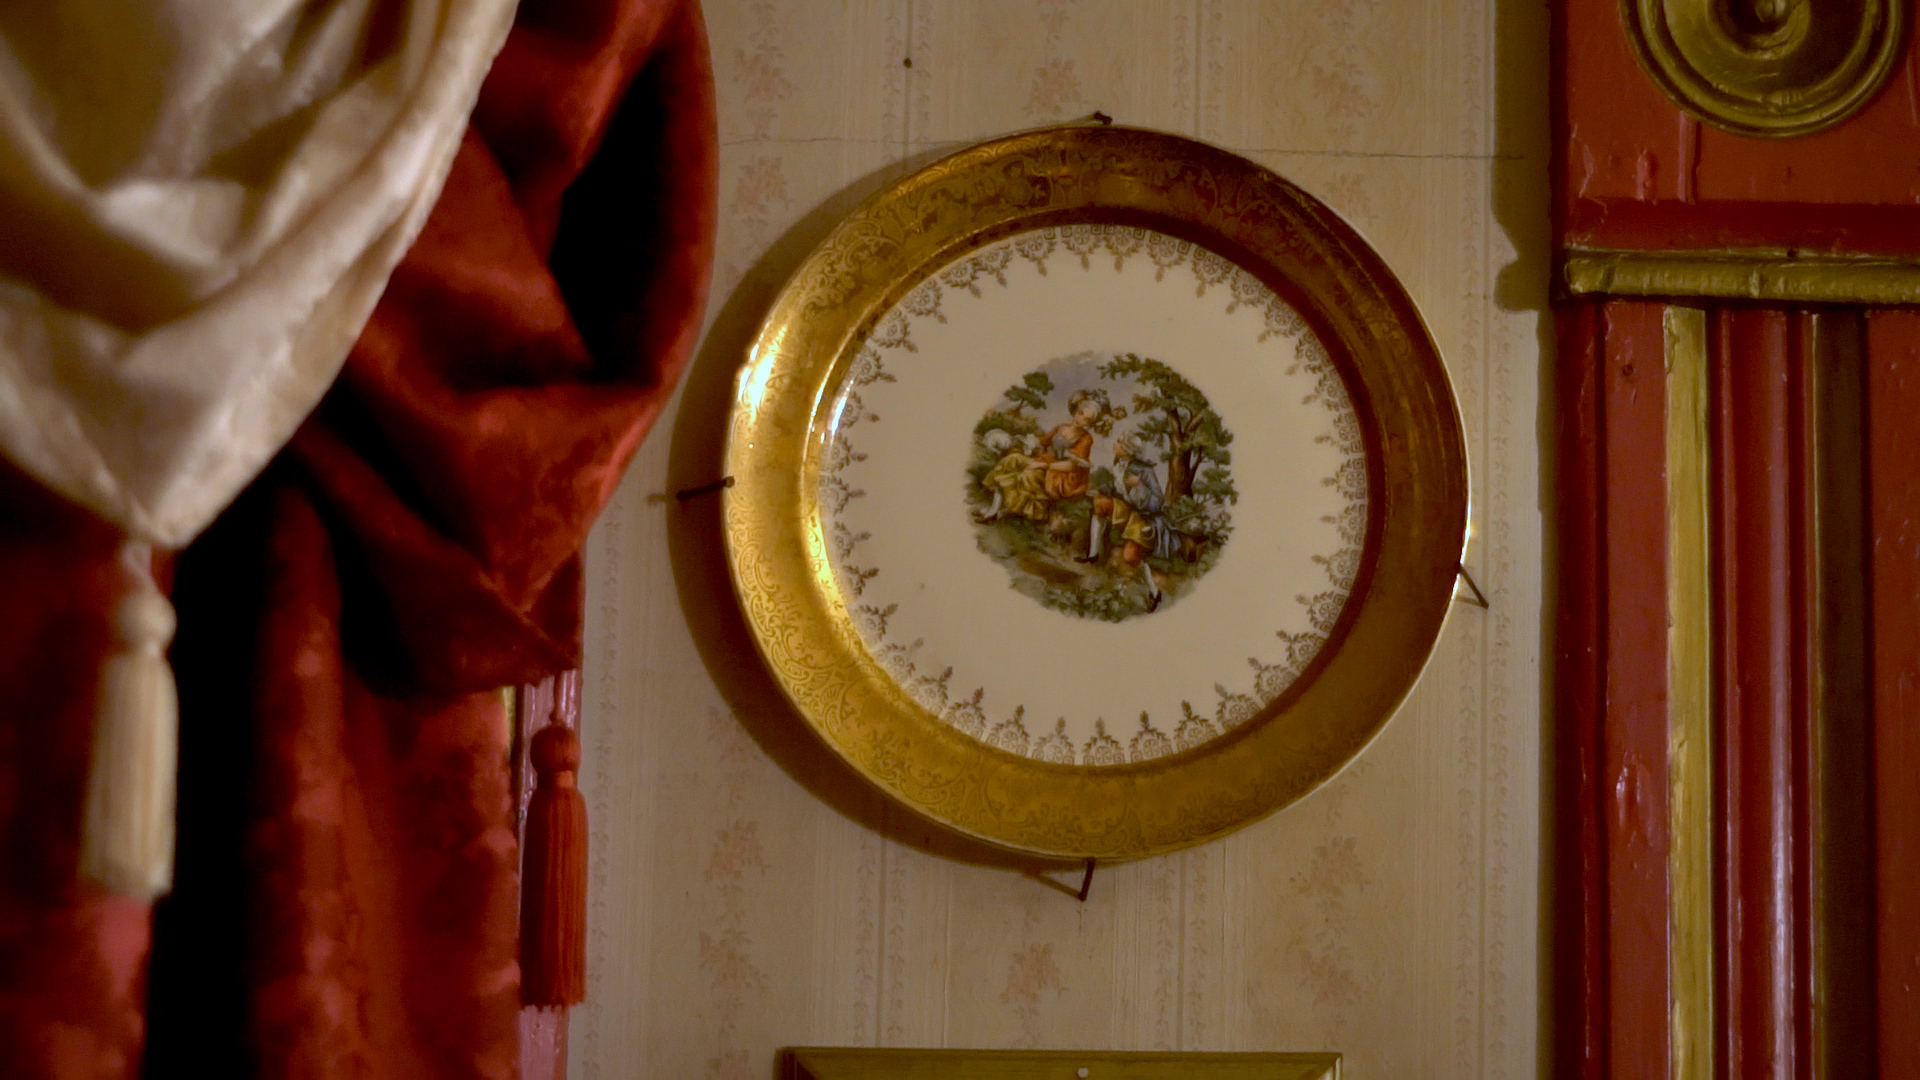 An antique plate from Yolanda Anderson's pink house in Austin